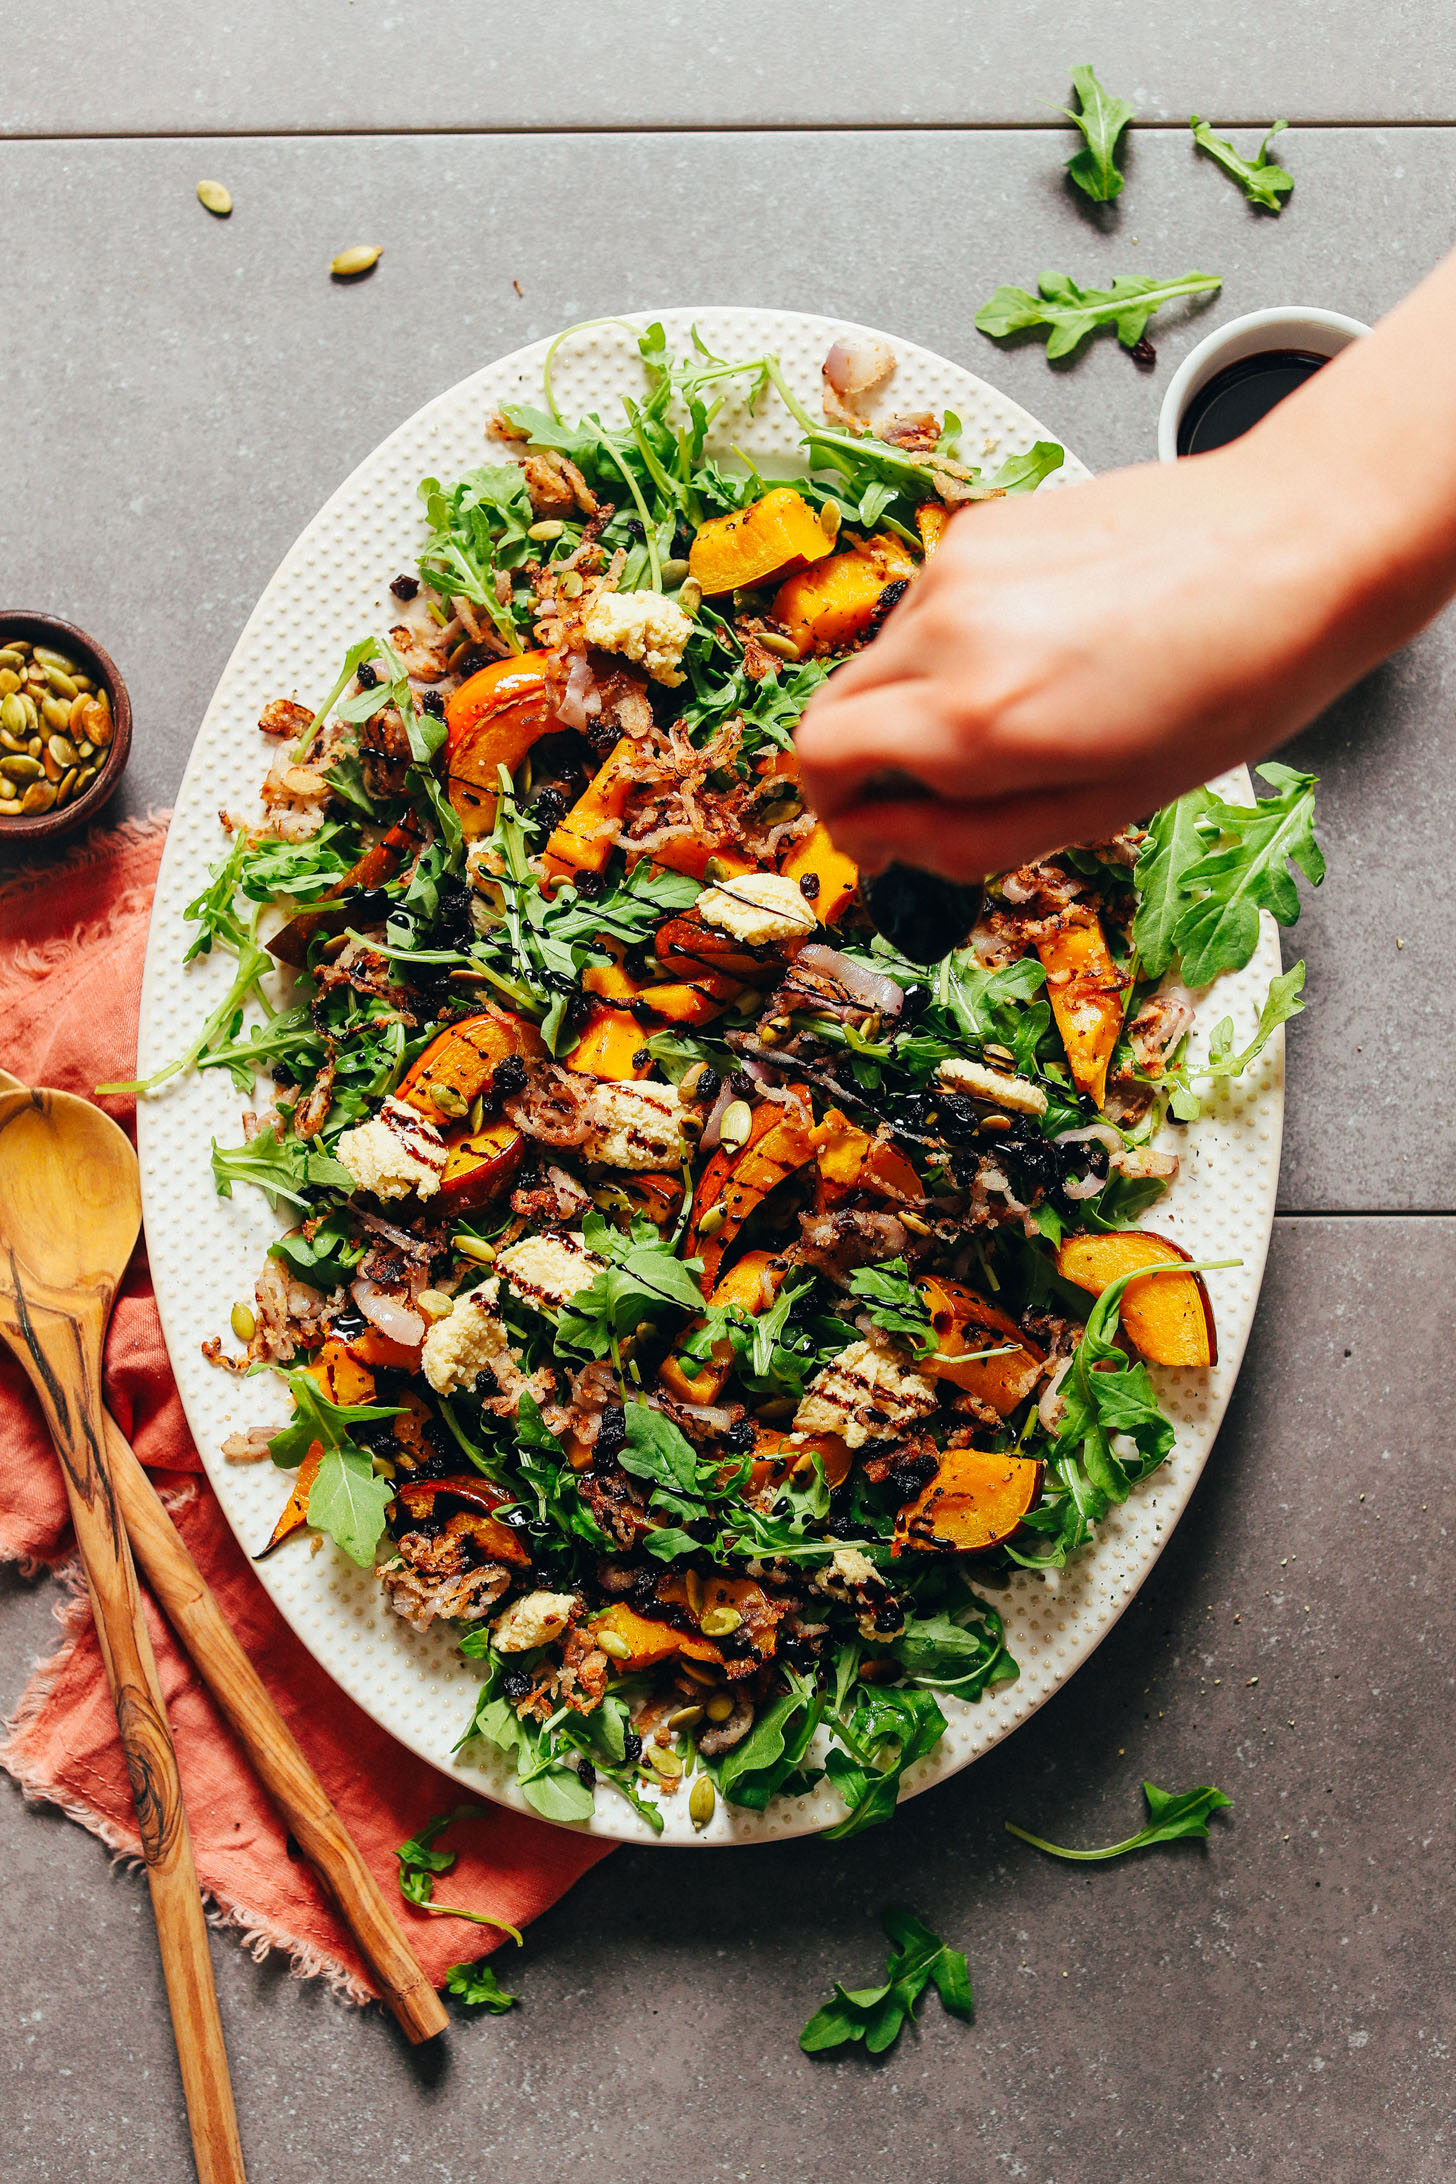 Adding balsamic drizzle over our Roasted Squash Salad with Nut Cheese